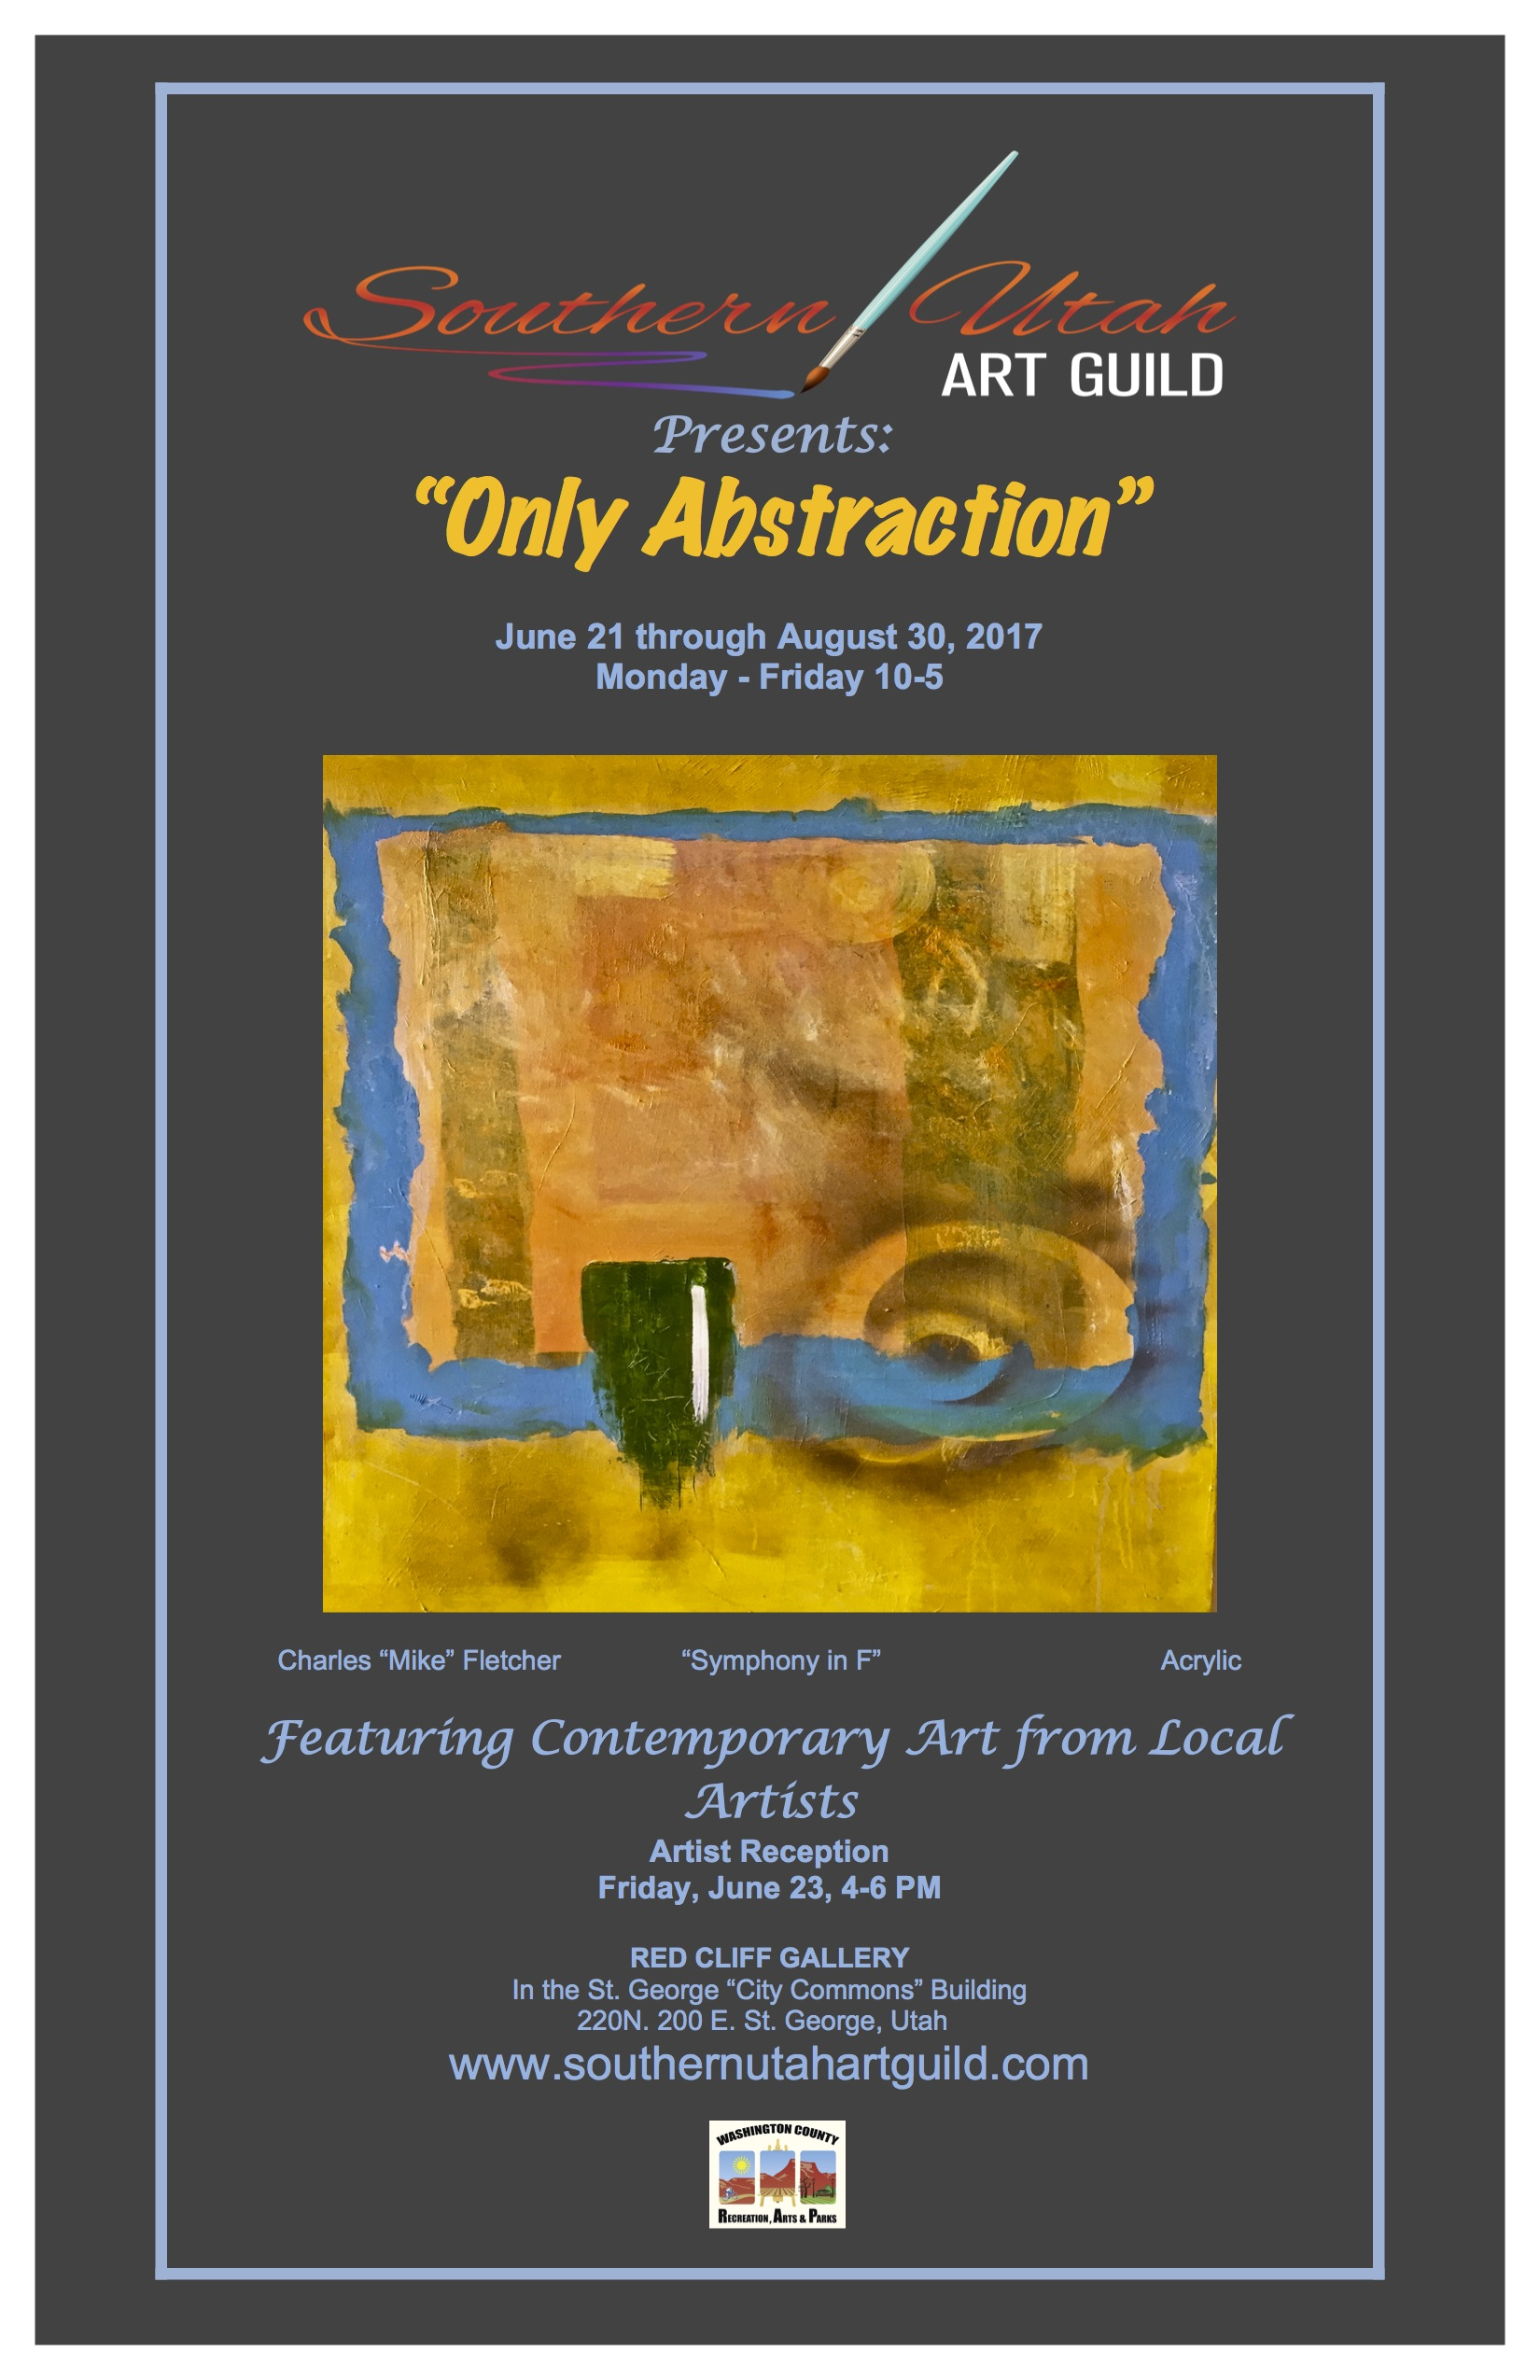 Southern utah art guild announces only abstraction art for St charles craft show 2017